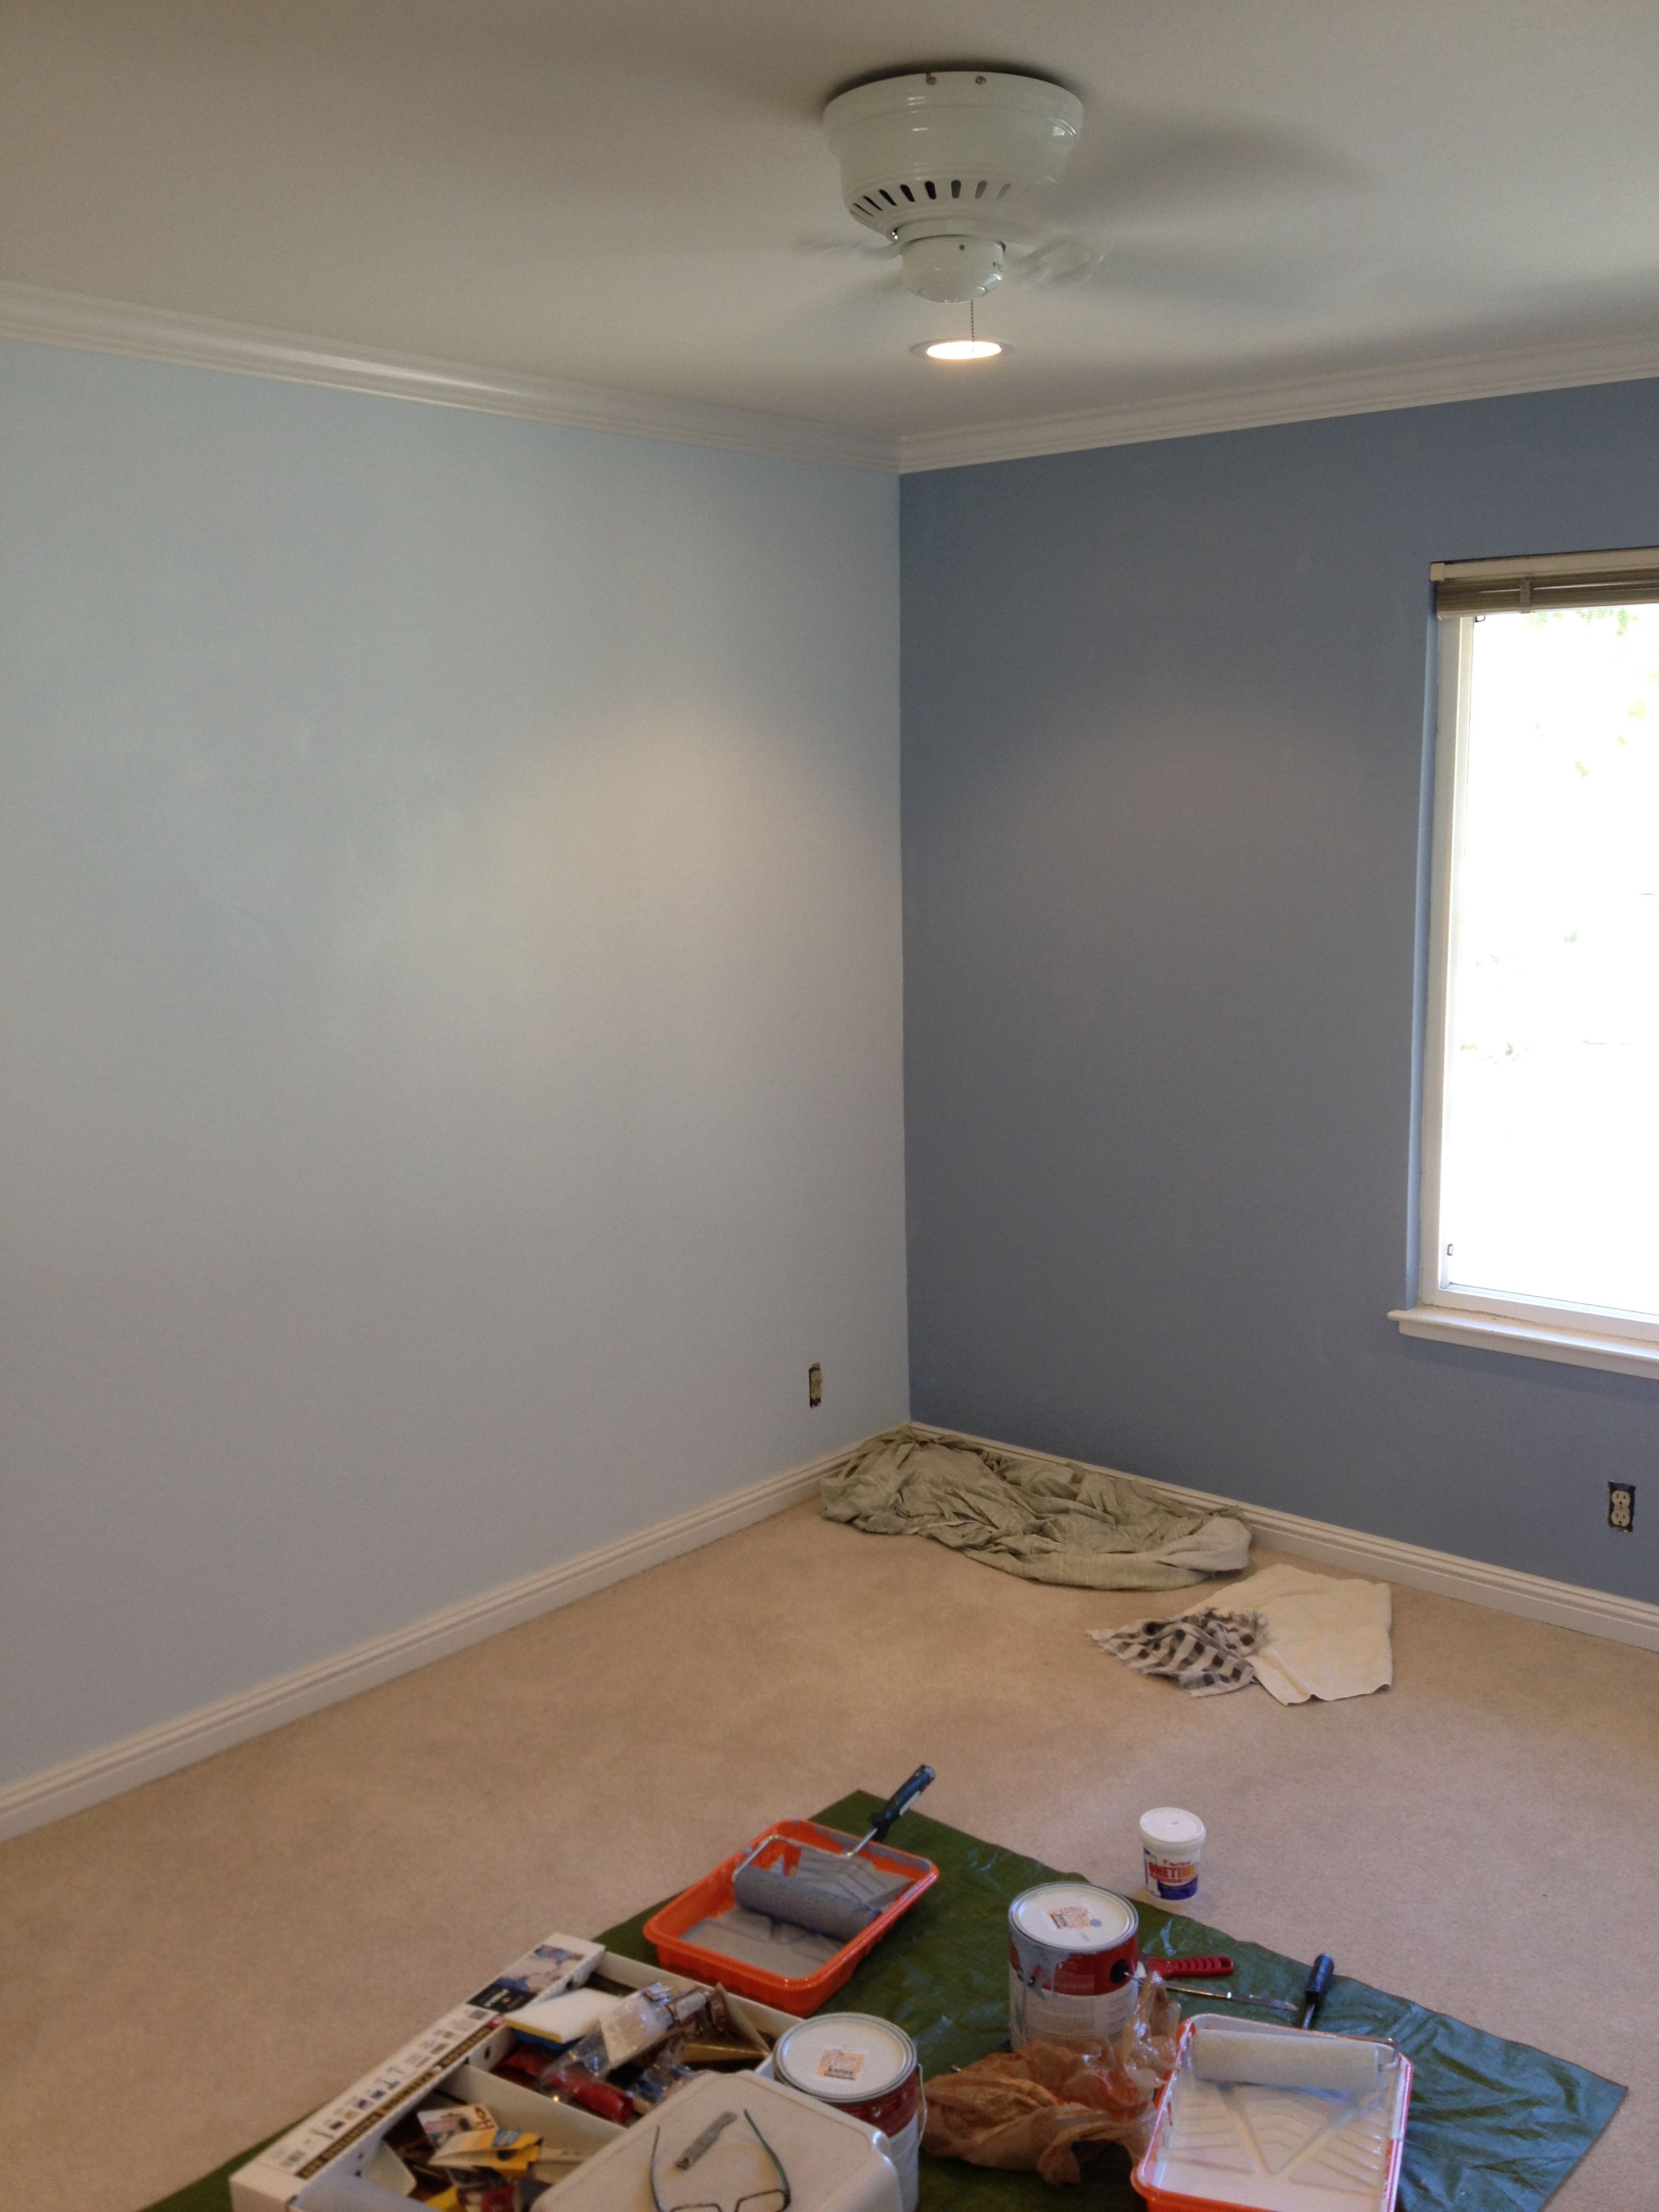 Room Painted Using Behr Russian Blue Window Wall And Wave Crest Turned Out Lovely